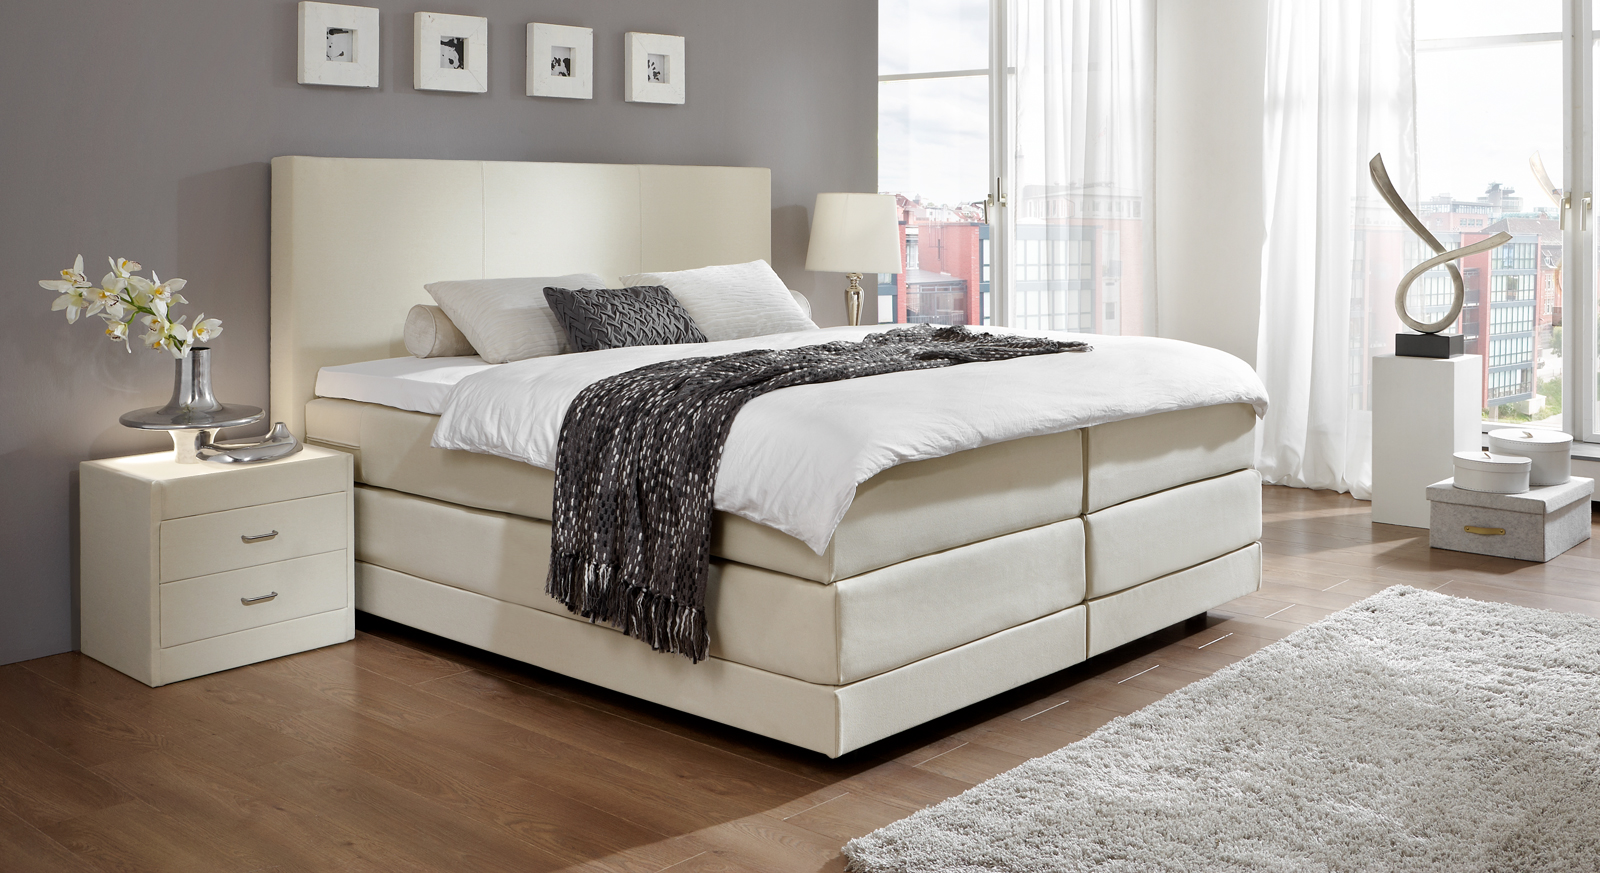 boxspringbett dubai u erst hochwertiges boxspringbett in tollem design. Black Bedroom Furniture Sets. Home Design Ideas